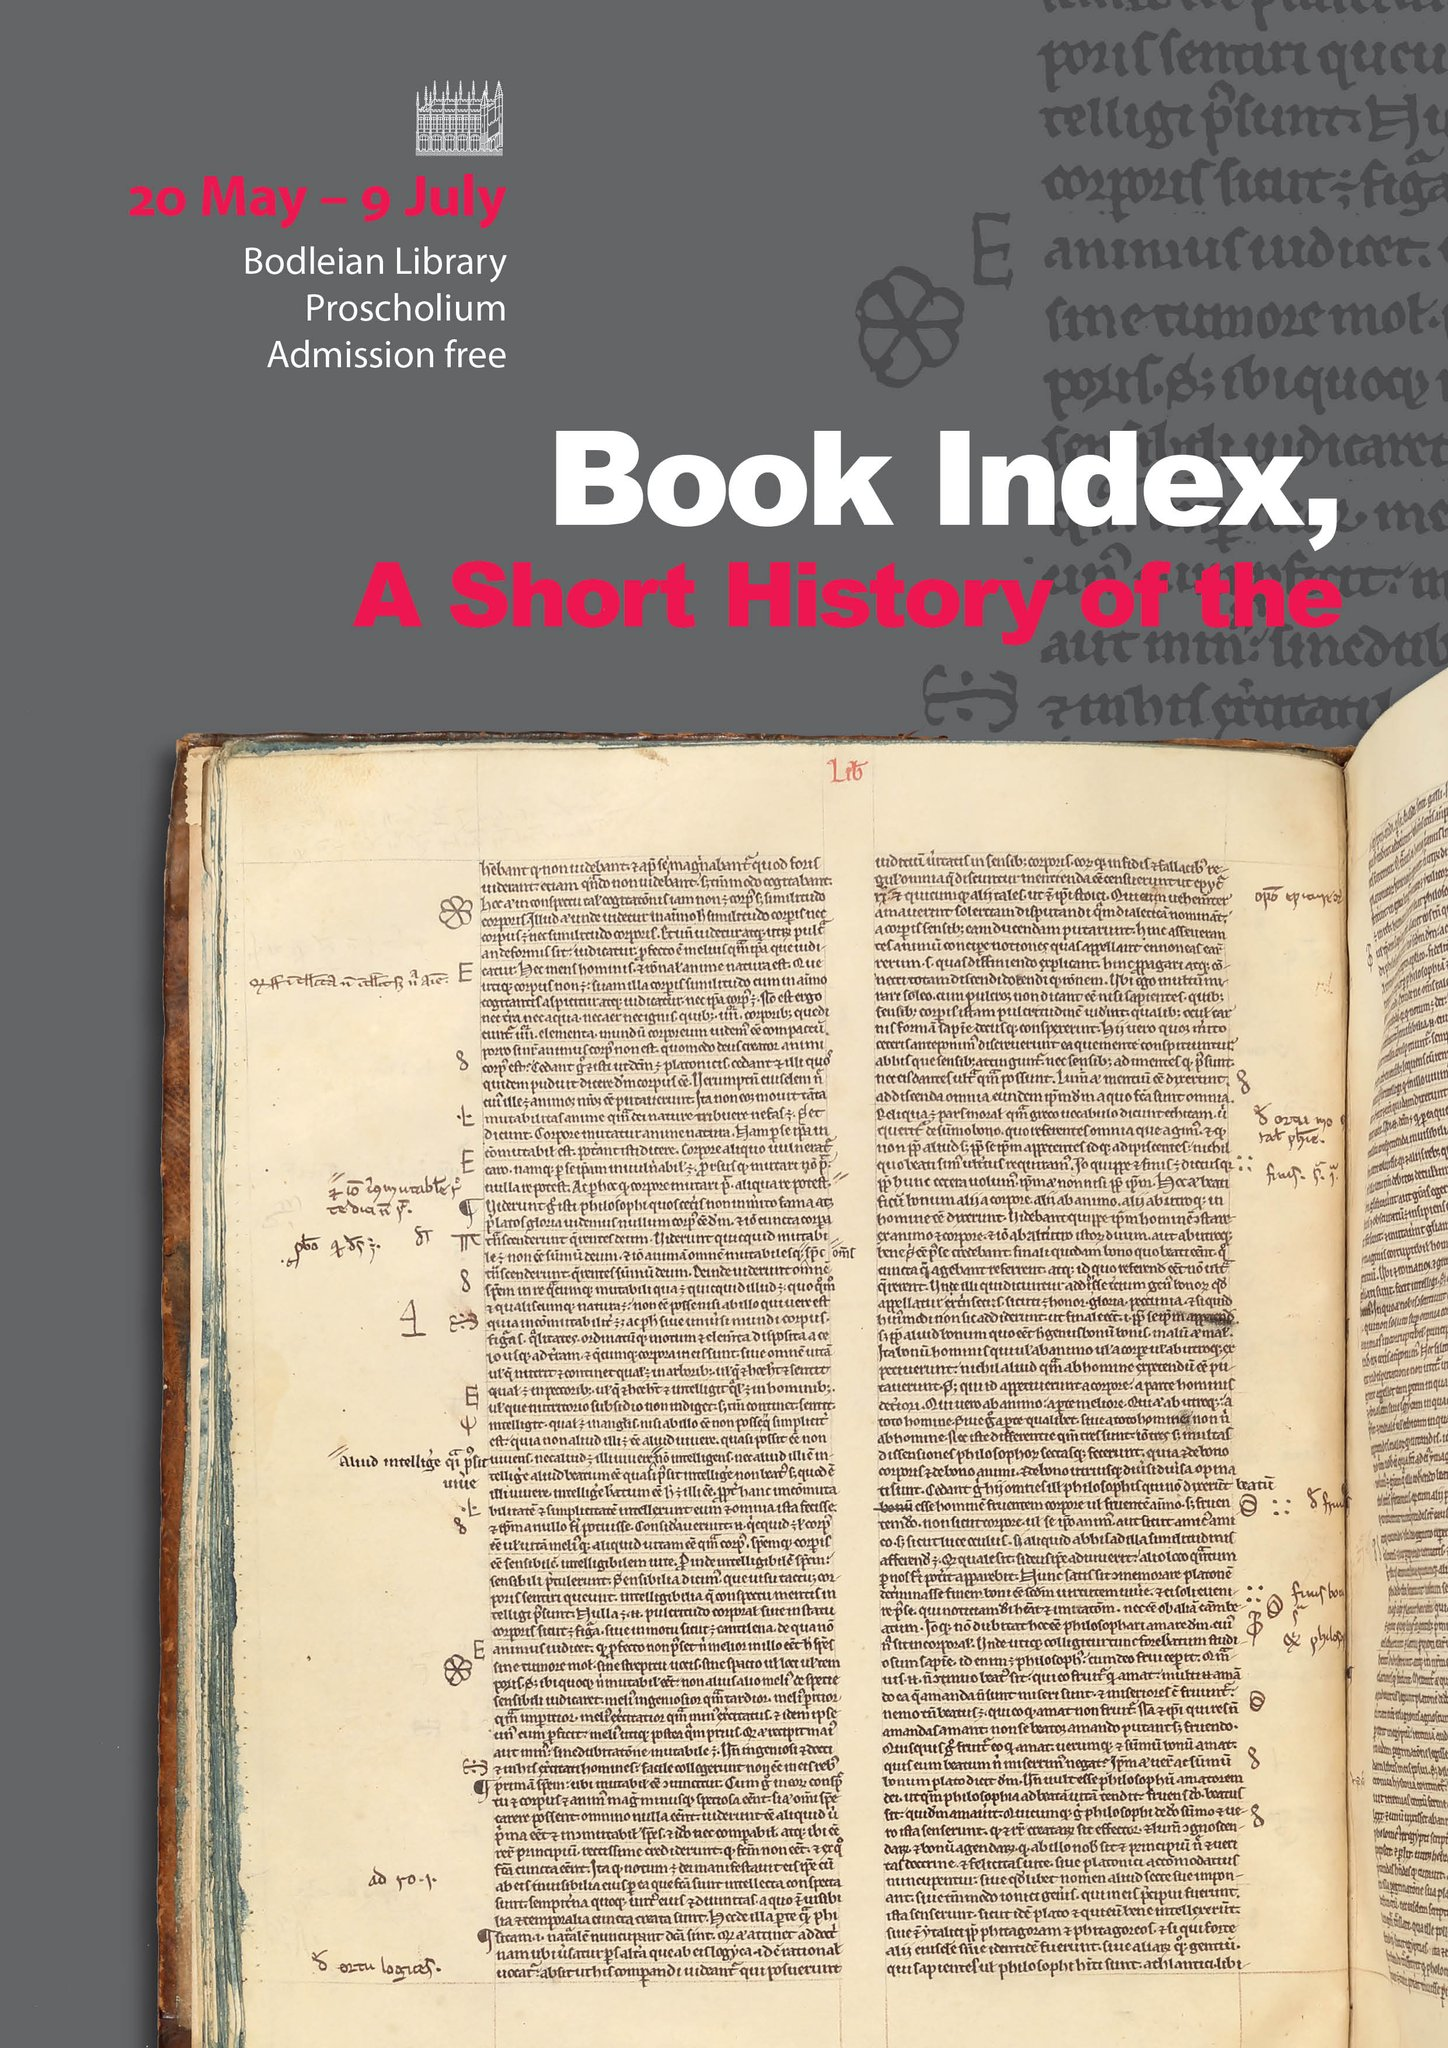 If you're at tomorrow's #indexers conference in Oxford, spare a moment to check out the display of historical indexes in the @bodleianlibs https://t.co/rcGLihbkew